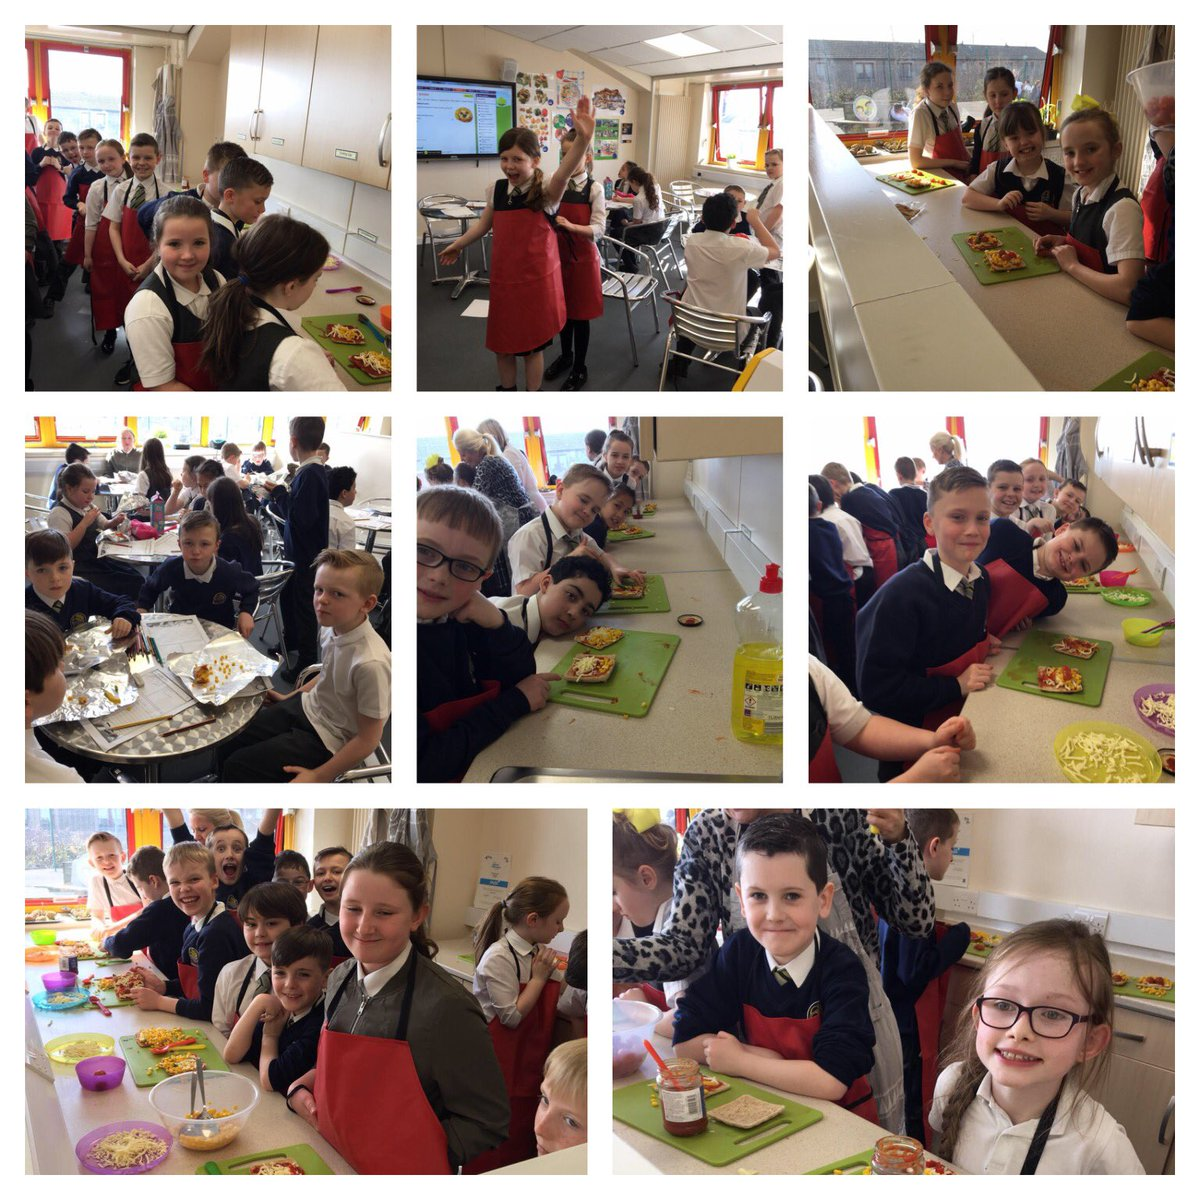 P5a had lots of fun making funny face pizzas  #cookingkitchen @eastfieldschoolpic.twitter.com/si7nodKqTr